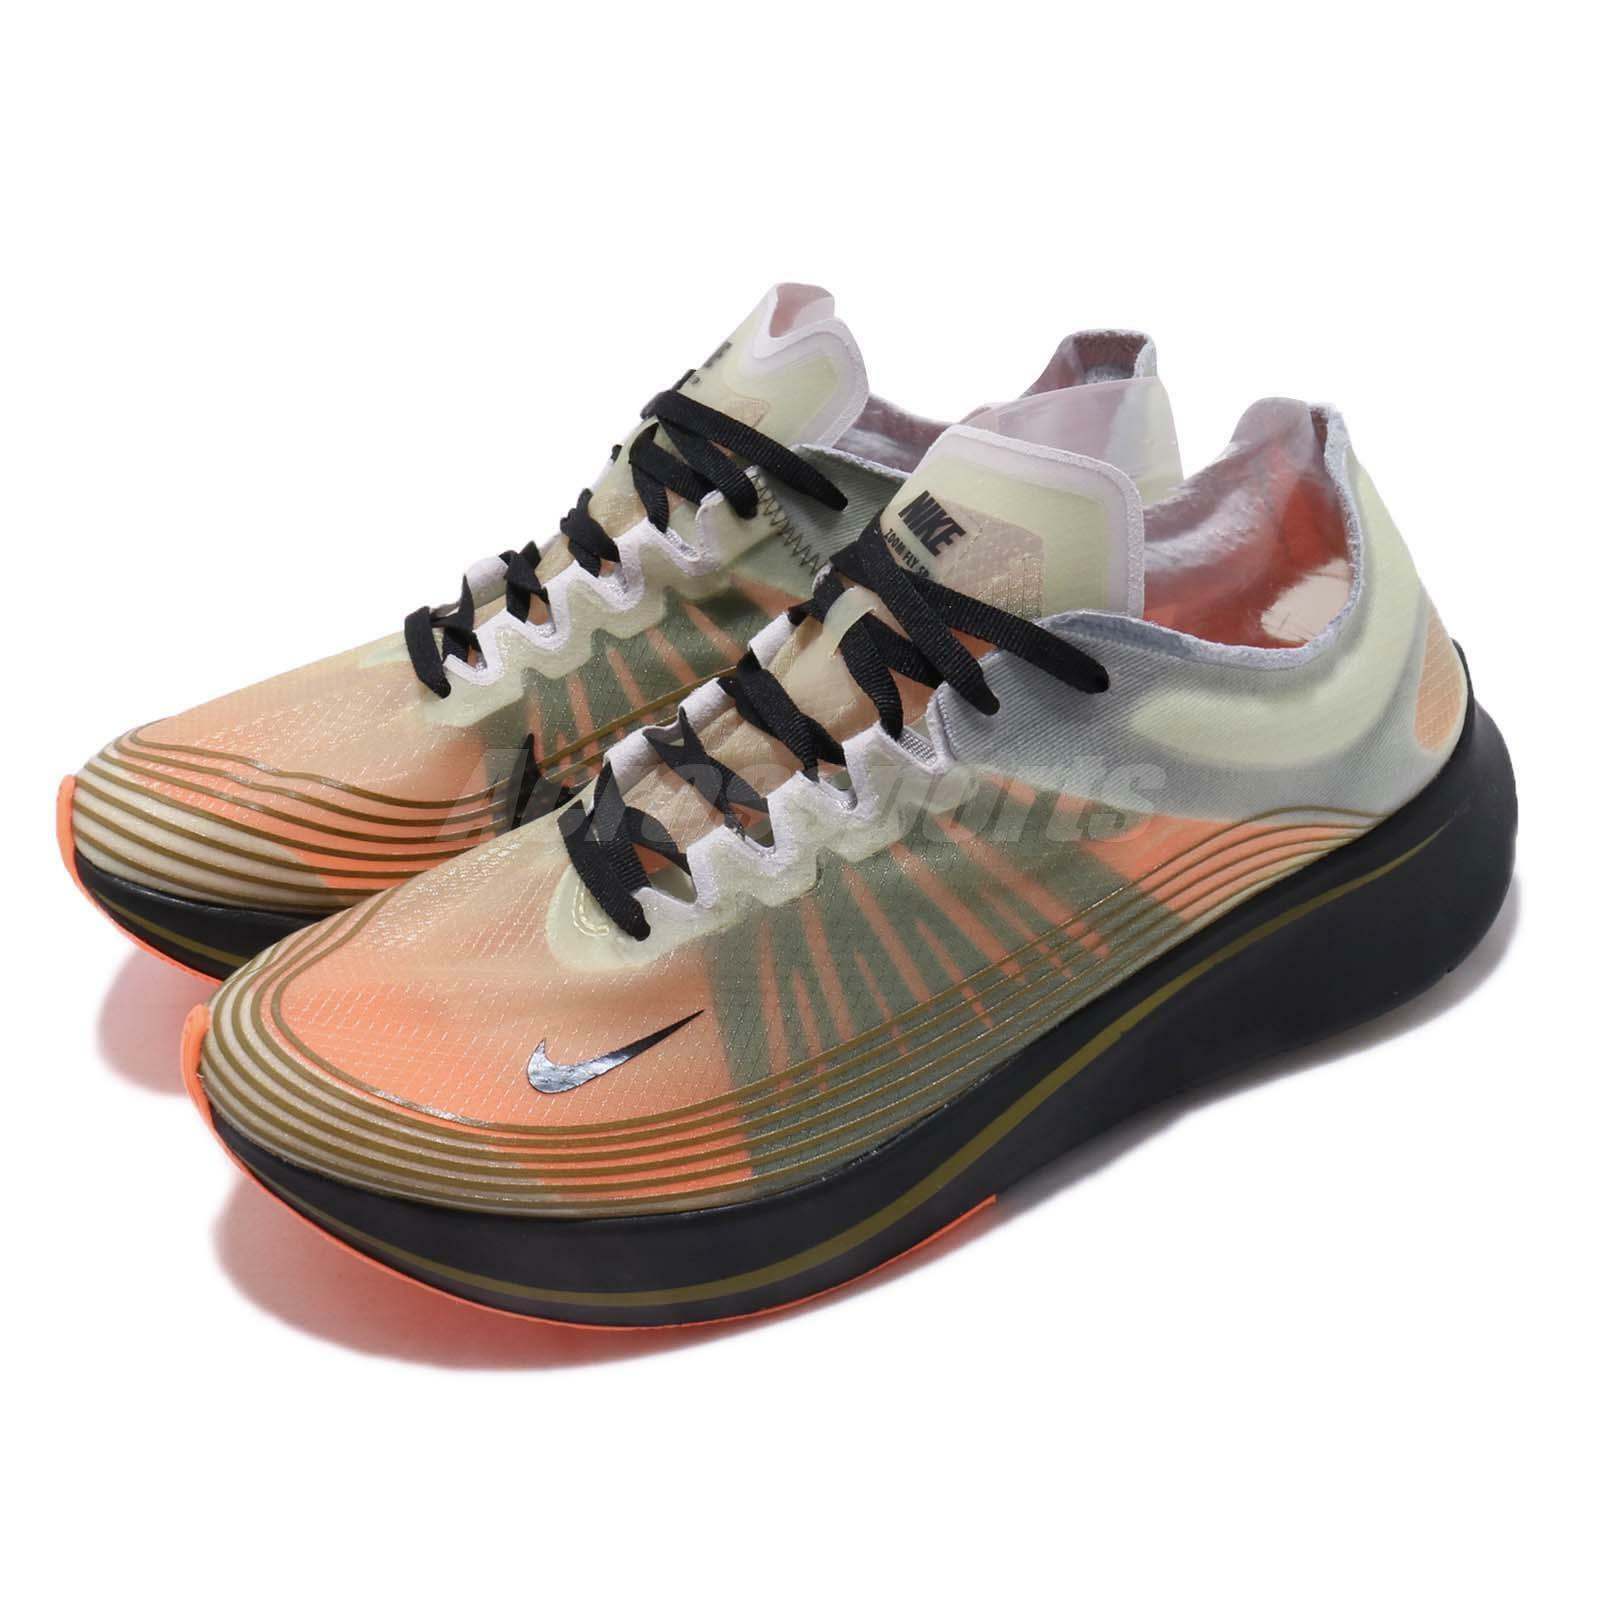 Sp - olive olive olive green nike zoom - fliegen aj9282-200 running schuhe orange schwarz - mens f7e53c